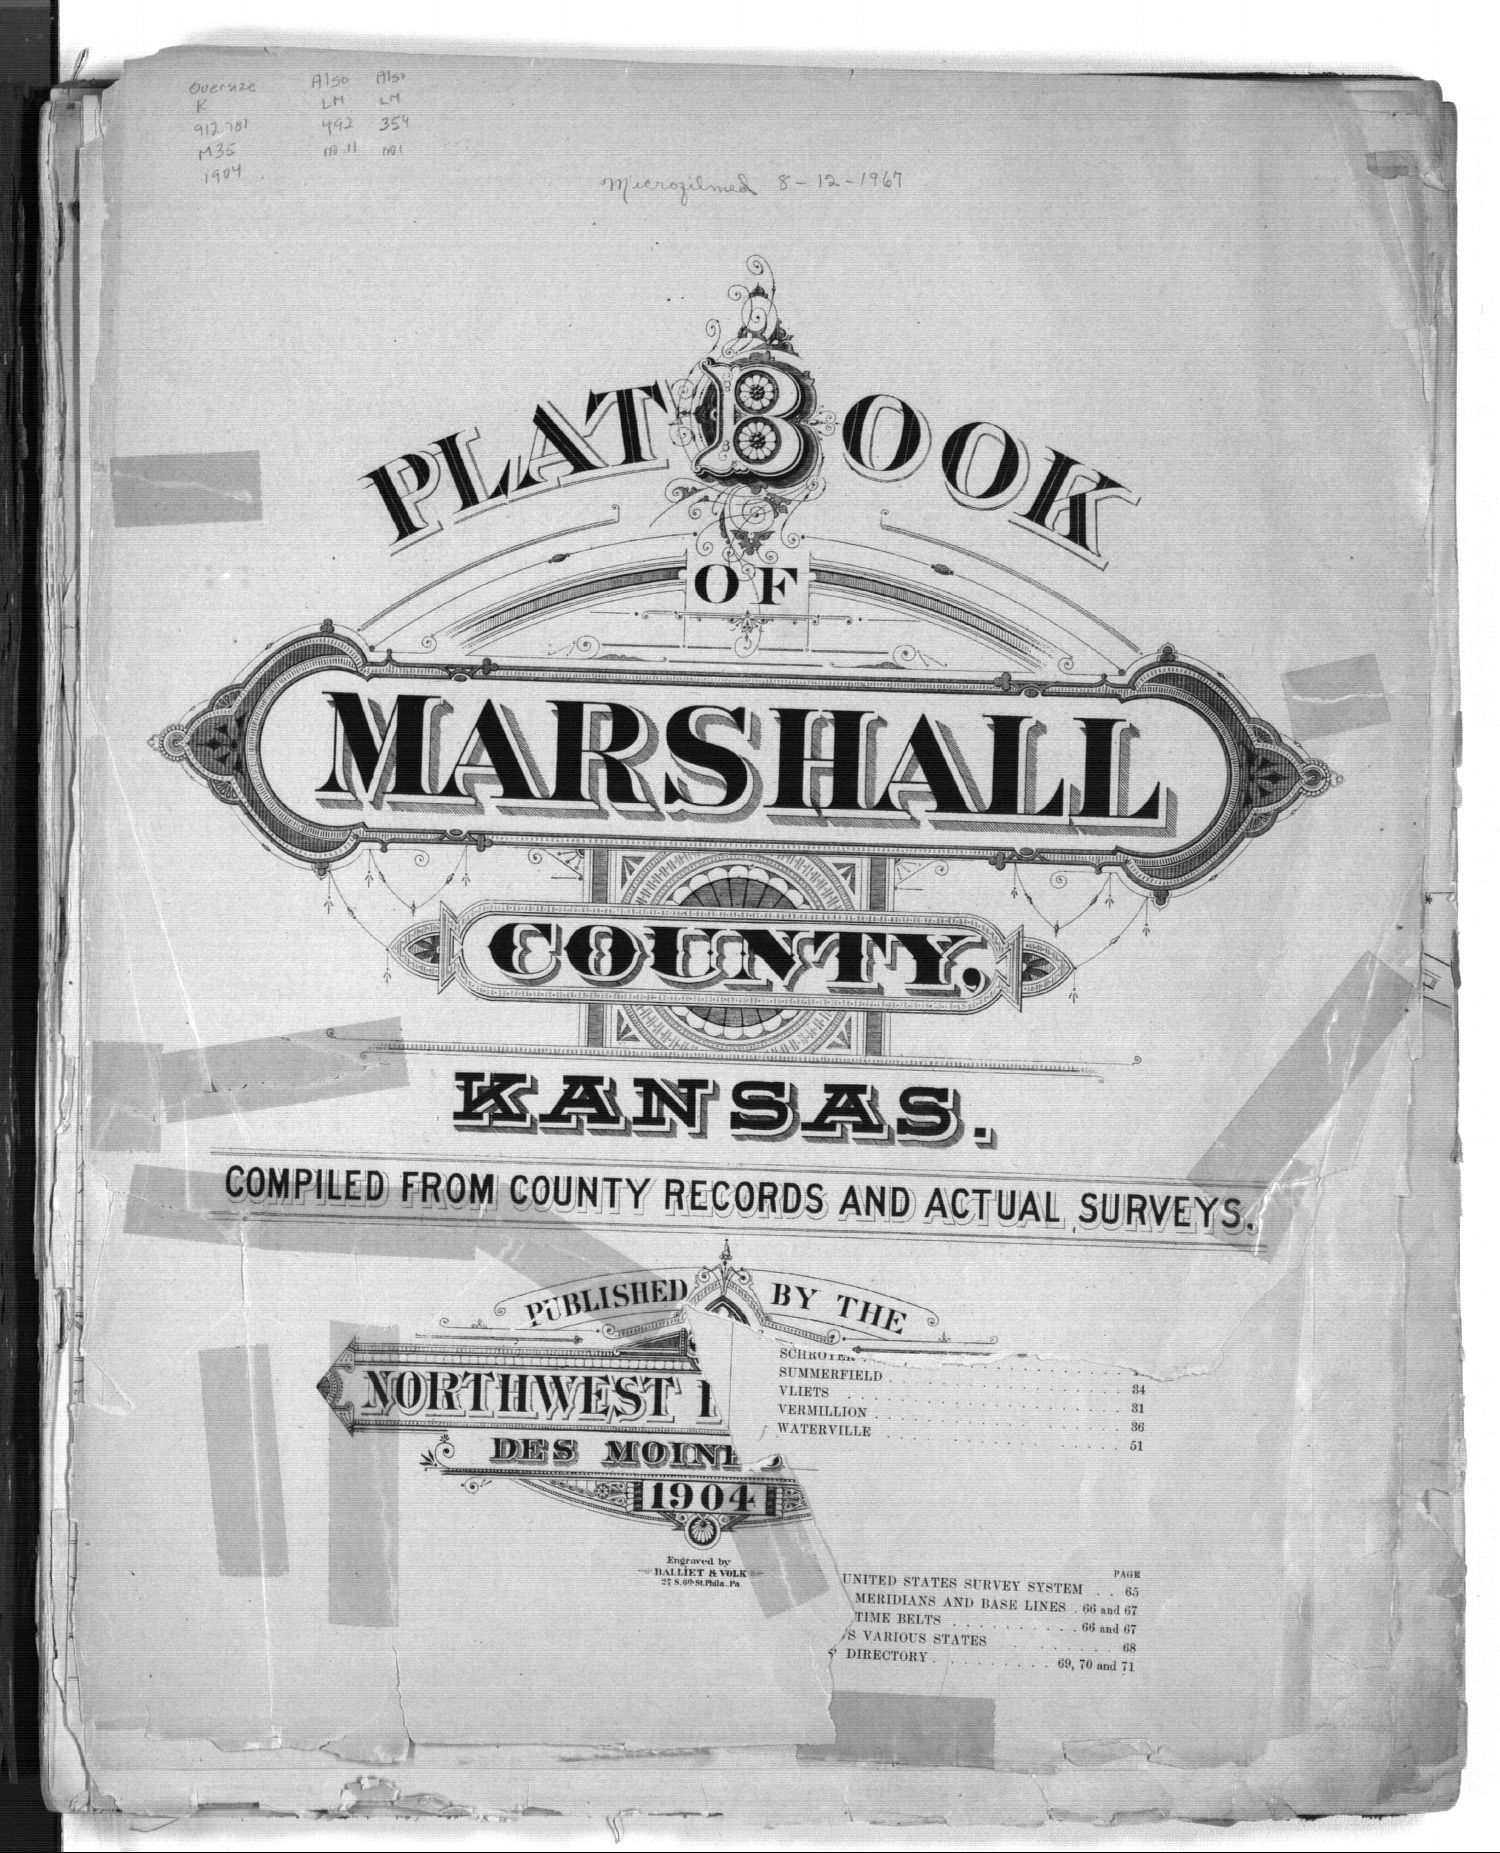 Plat book of Marshall County, Kansas - Title Page